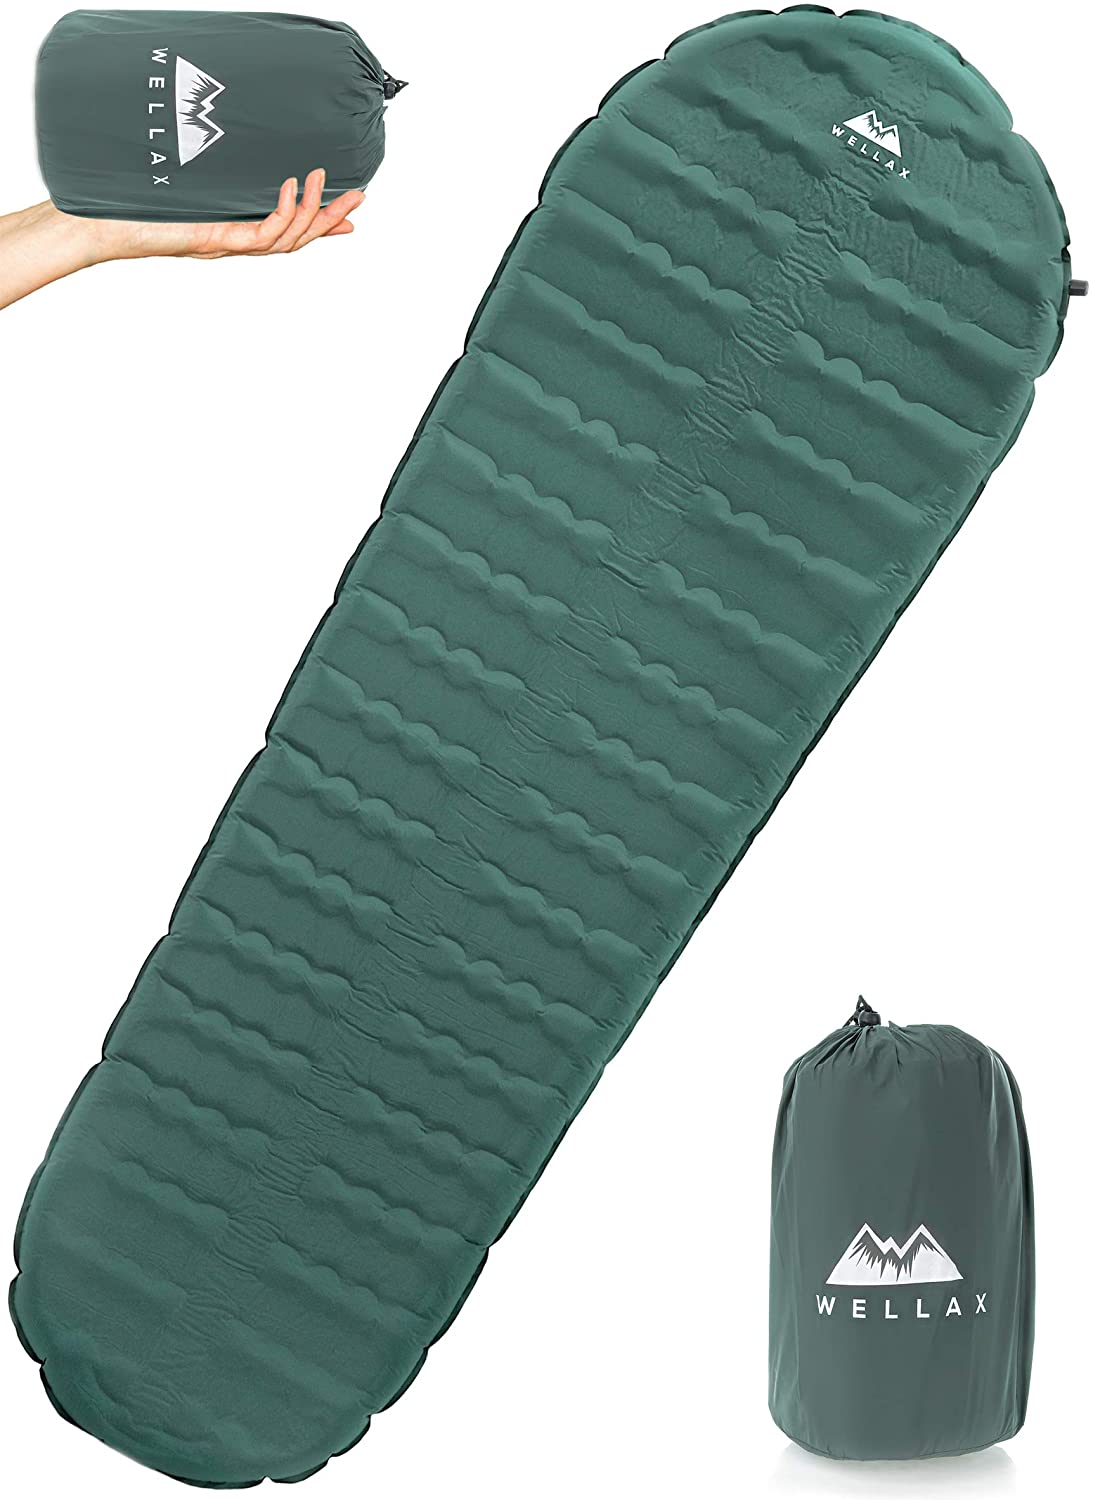 Regular - 70 x 20 x 2.5 inches Hybrid Camp Mattress with Foam Frame Best Inflatable Camping Mat for Backpacking Traveling and Hiking Hybrid Camp Mattress with Foam Frame Traveling and Hiking WELLAX Ultralight Self Inflating Sleeping Pad for Camping